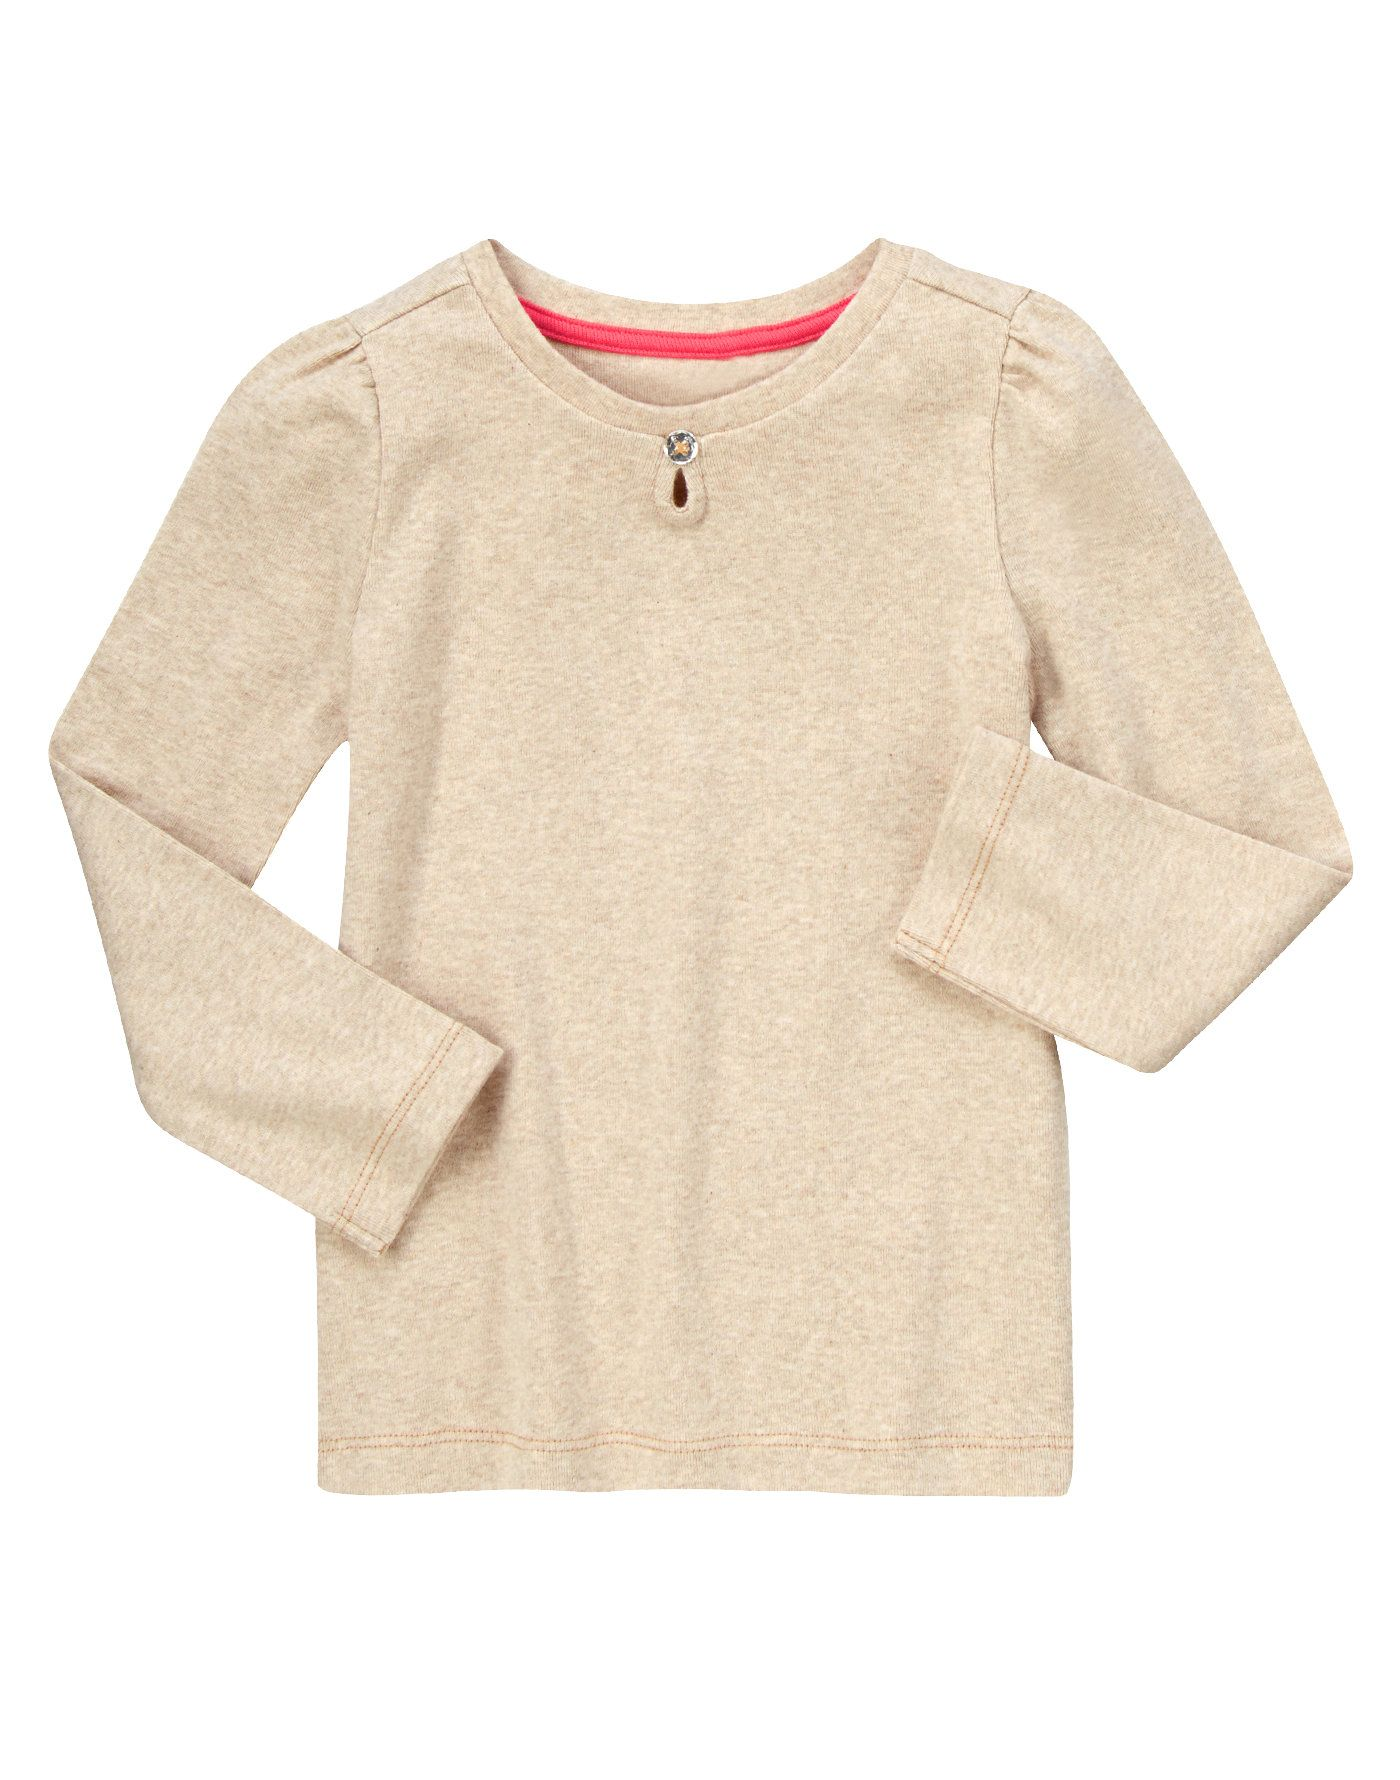 a8ec86fc3 Soft and comfy long sleeve tee is fancied up with a keyhole and ...